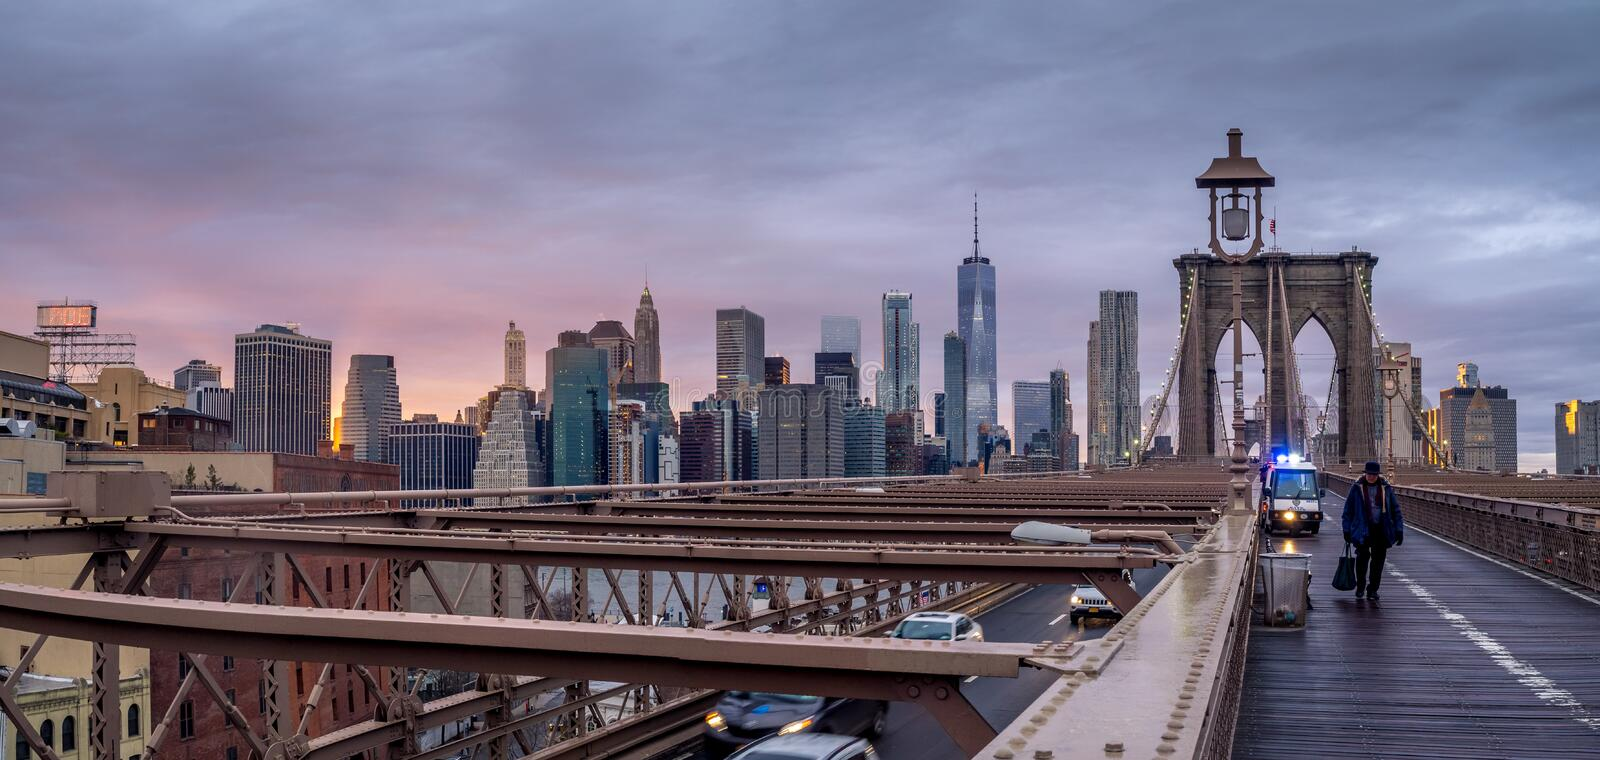 Brooklyn-Brücke am Sonnenuntergang in New York City lizenzfreies stockfoto